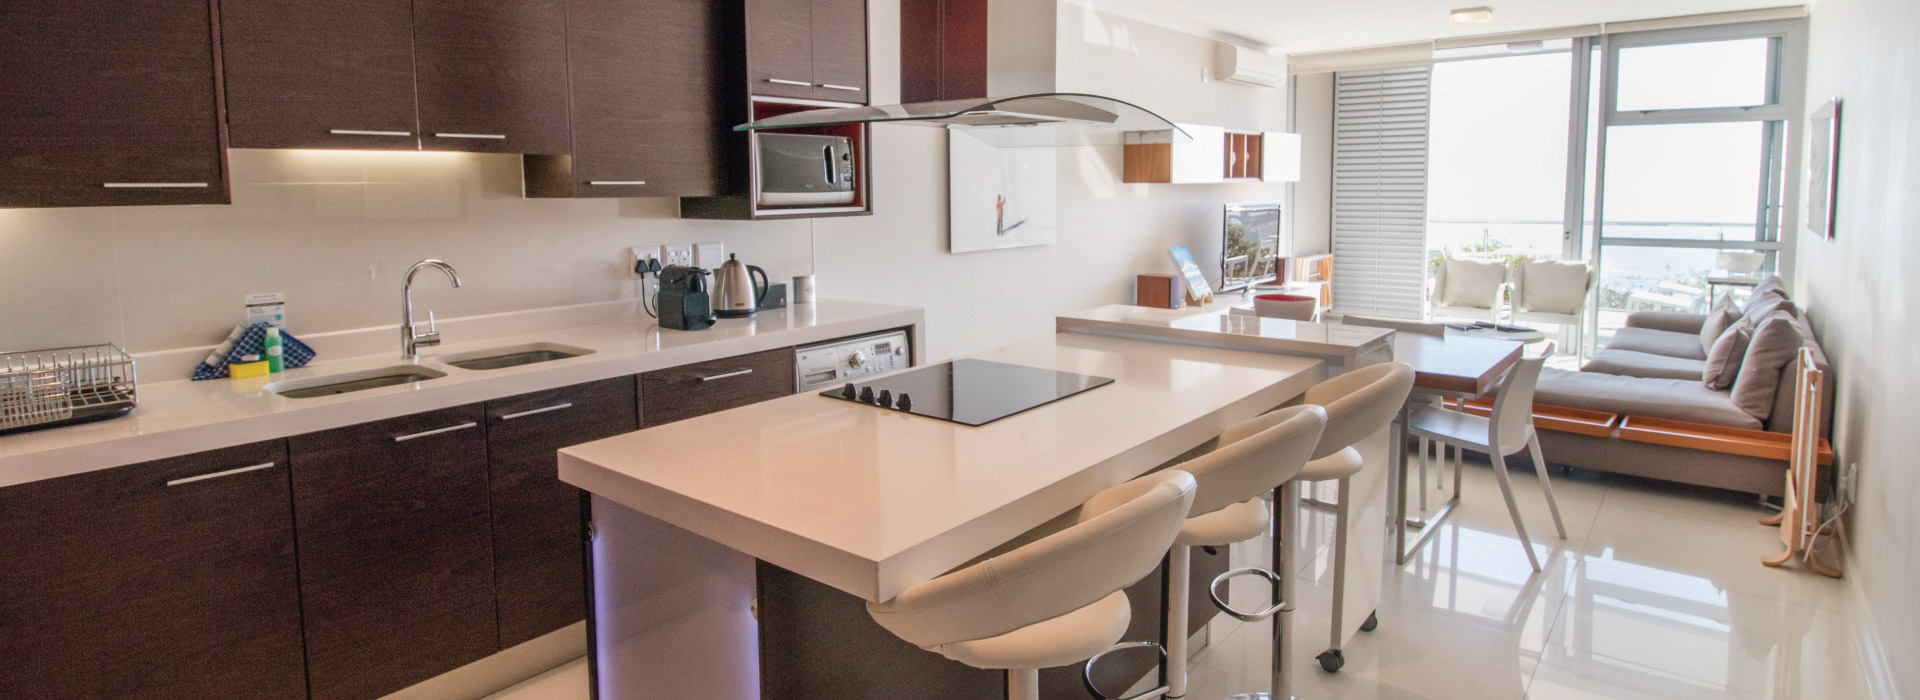 The Crystal - Apartment Kitchen